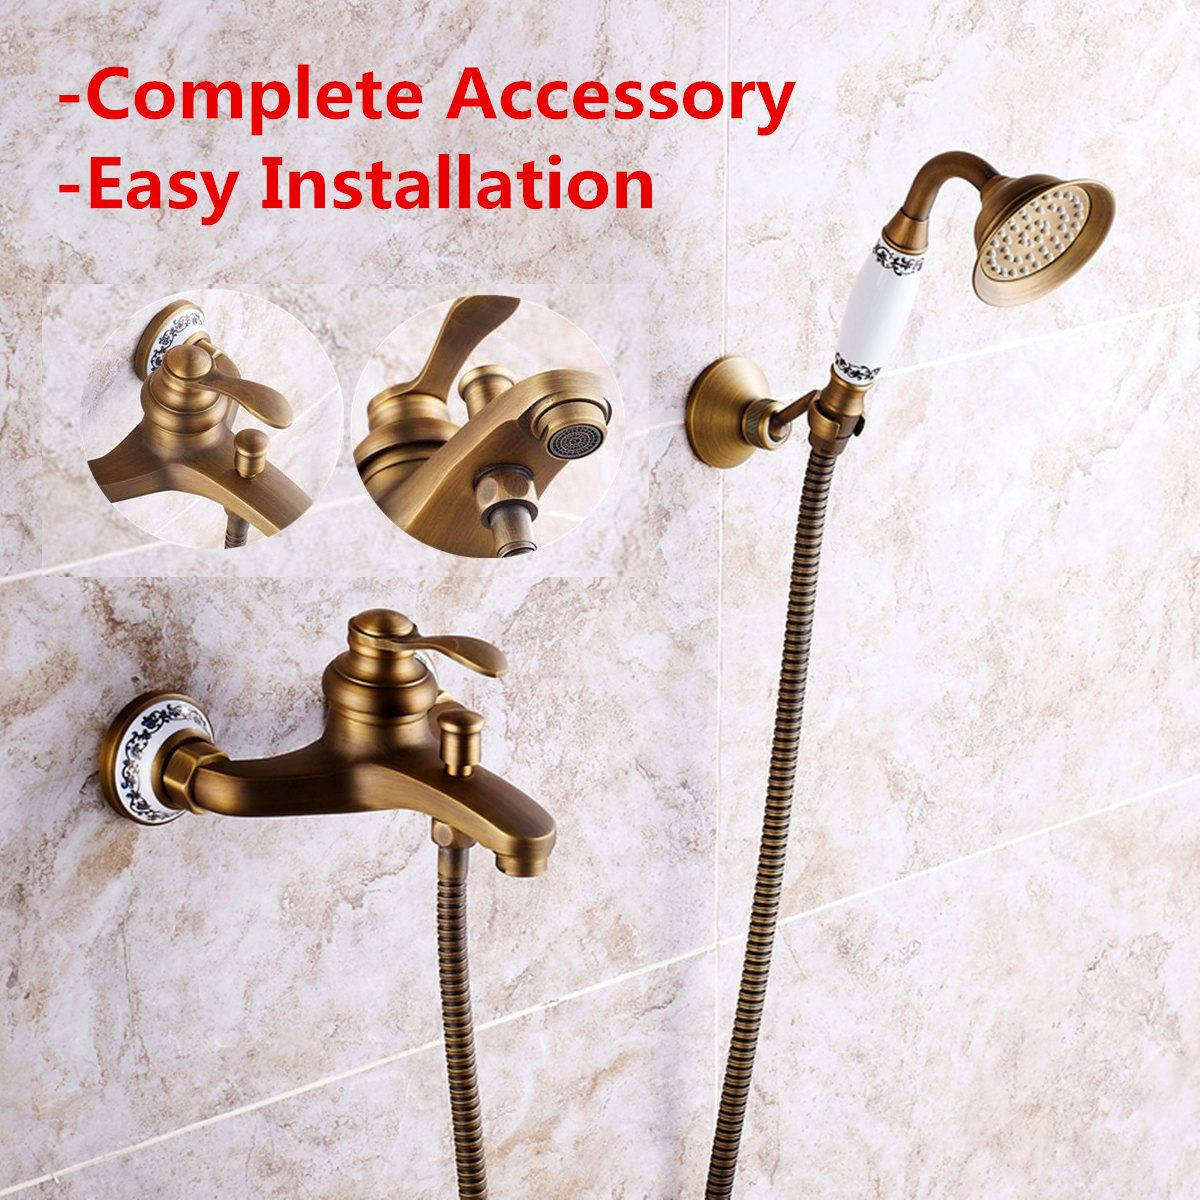 Antique Brass Shower Faucet Sets Head Bathroom Faucets Bath Tub Spout Hand Shower Wall Mounted Held Mixer Tap Spray Waterfall